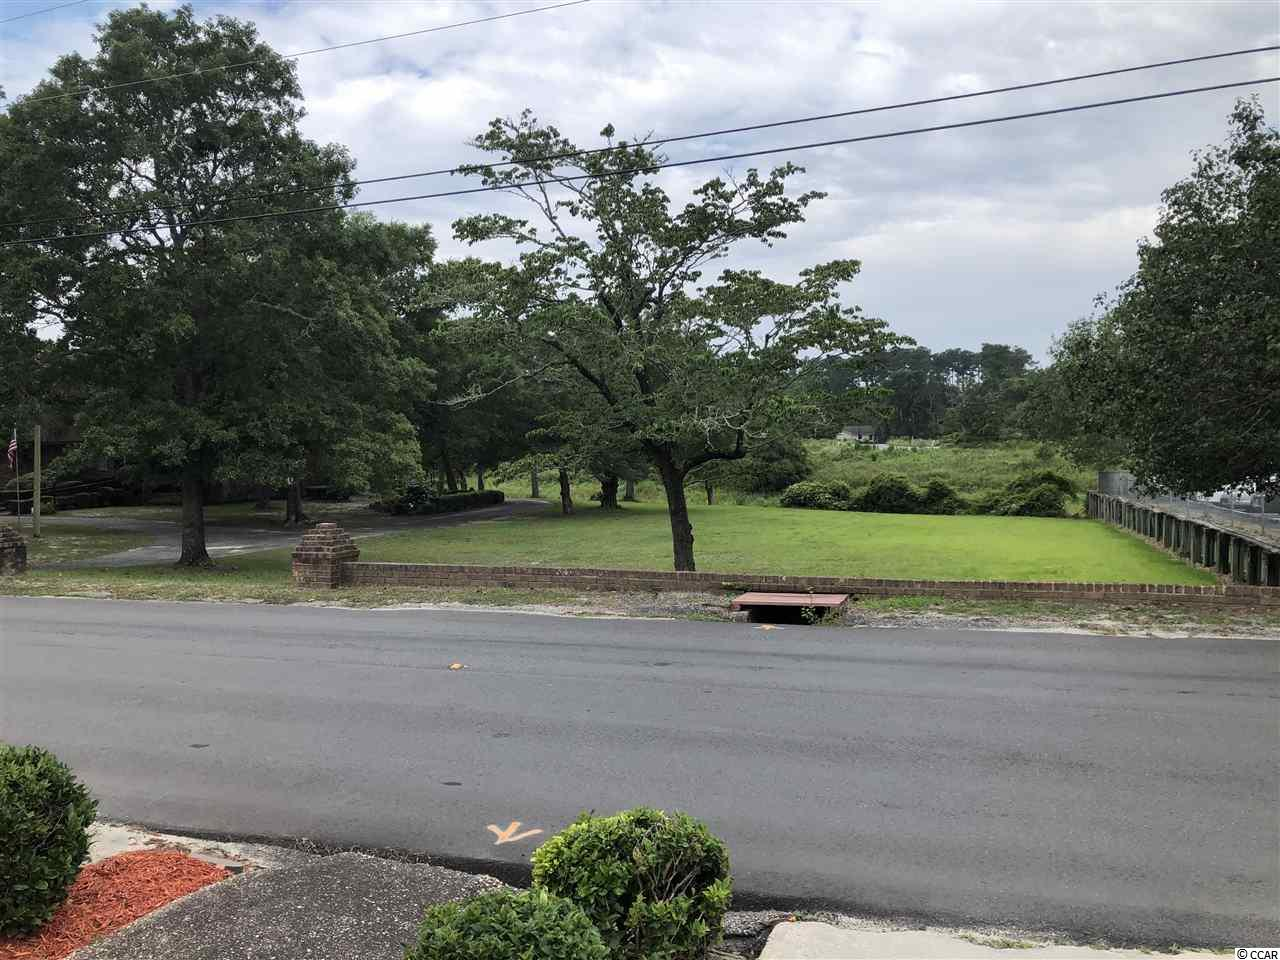 Beautiful lot a little over a quarter of an acre located just a few short blocks from the Intracoastal Waterway and just a short 10 minute drive to the beach.  The absolute ideal place to build your dream home free of any HOAs or cookie cutter subdivisions.  Take your golf cart or a short walk to all the waterfront dining and entertainment the waterway and Little River have to offer.  This lot backs up to a lake which offers a peaceful view and prohibits future building behind your new home.